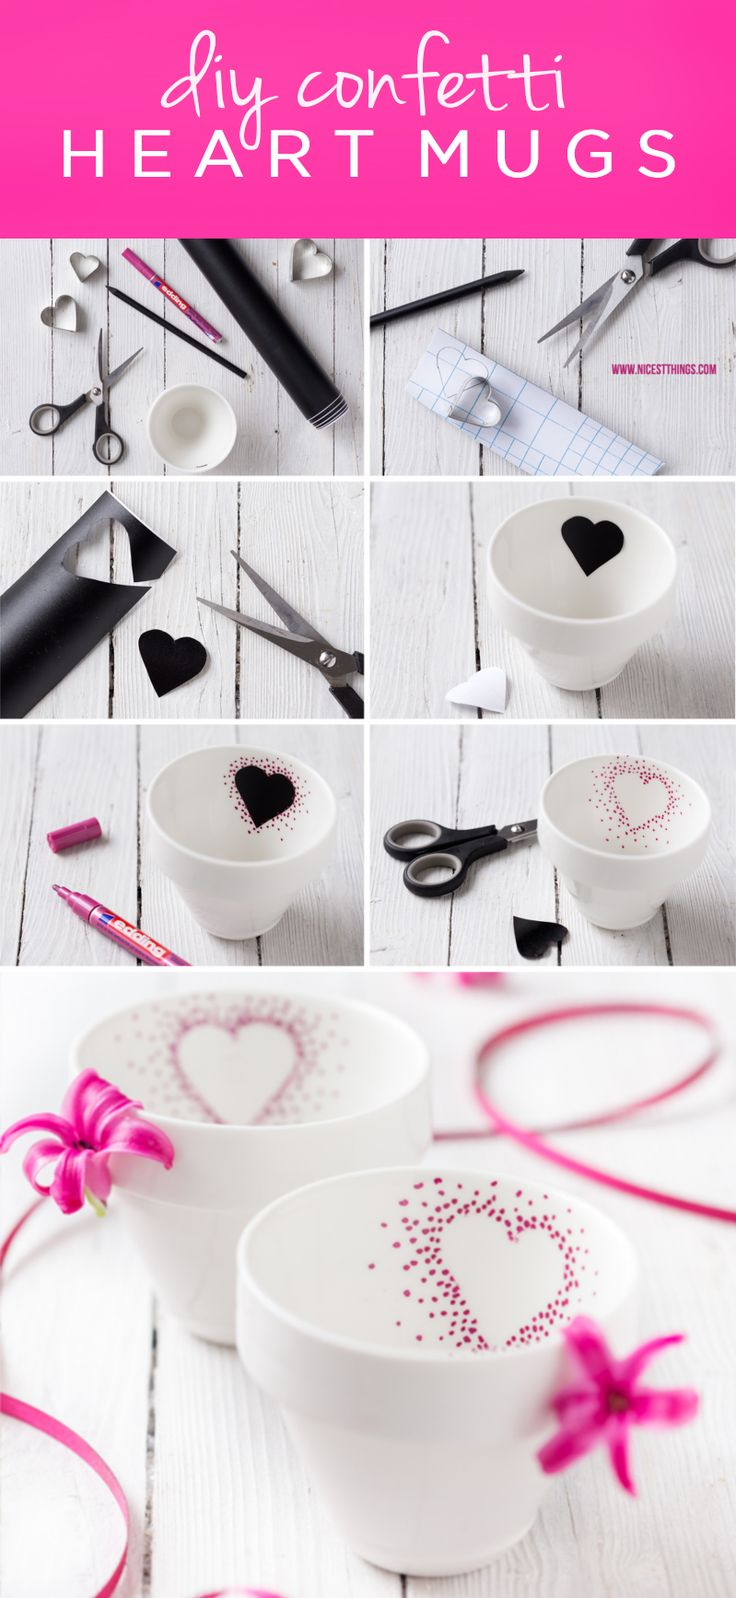 Tap into your creative side with this easy Valentine's Day craft idea! These DIY Confetti Heart Mugs are a sweet homemade gift idea that you can customize for a friend or make together with your kids as a fun holiday activity!